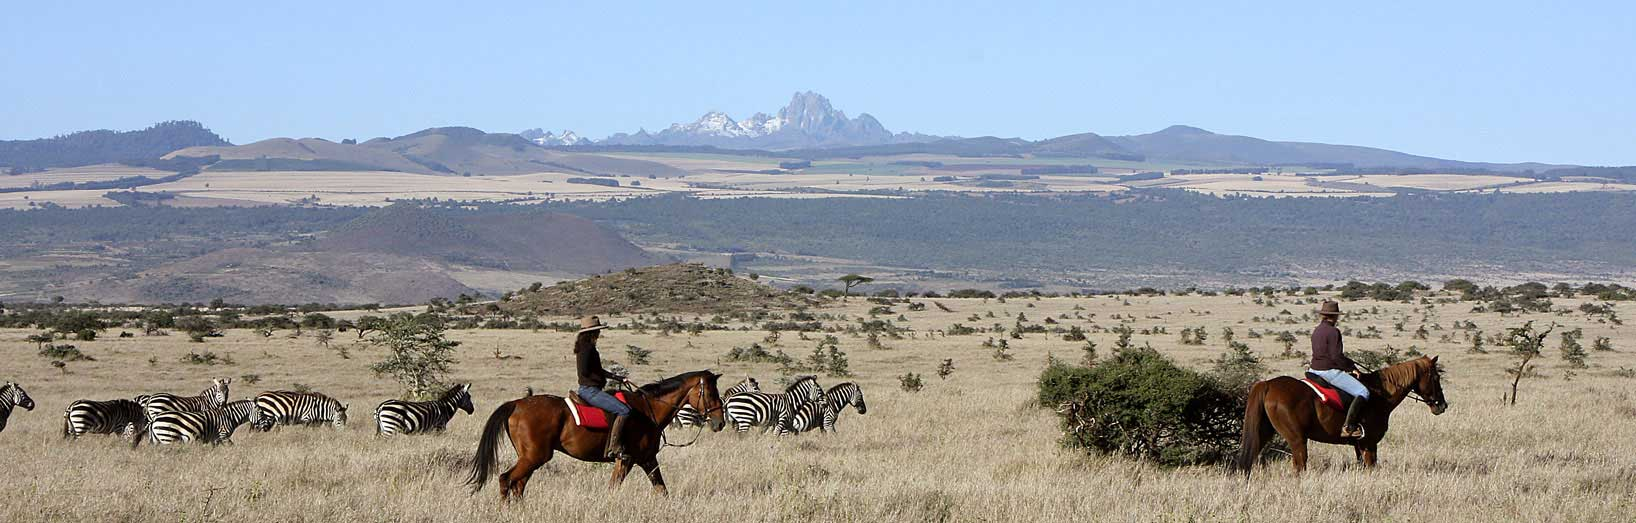 Horse riding safaris Kenya.jpg